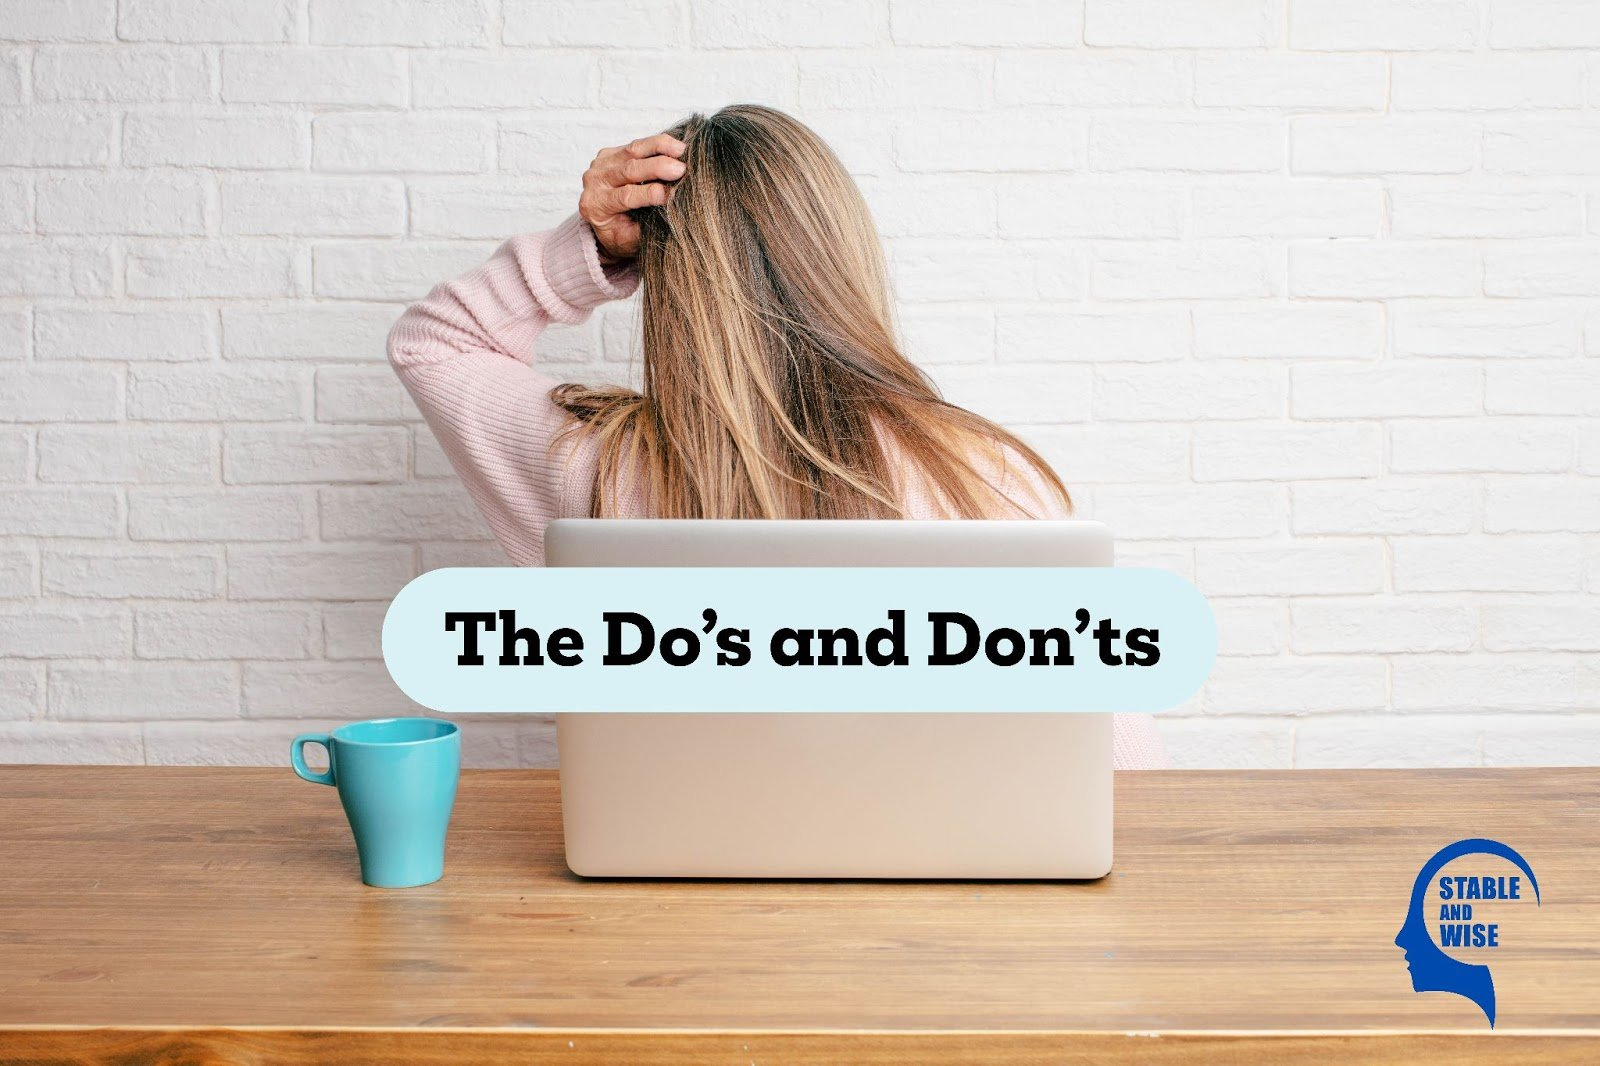 Employment connections; The Do's and Don'ts